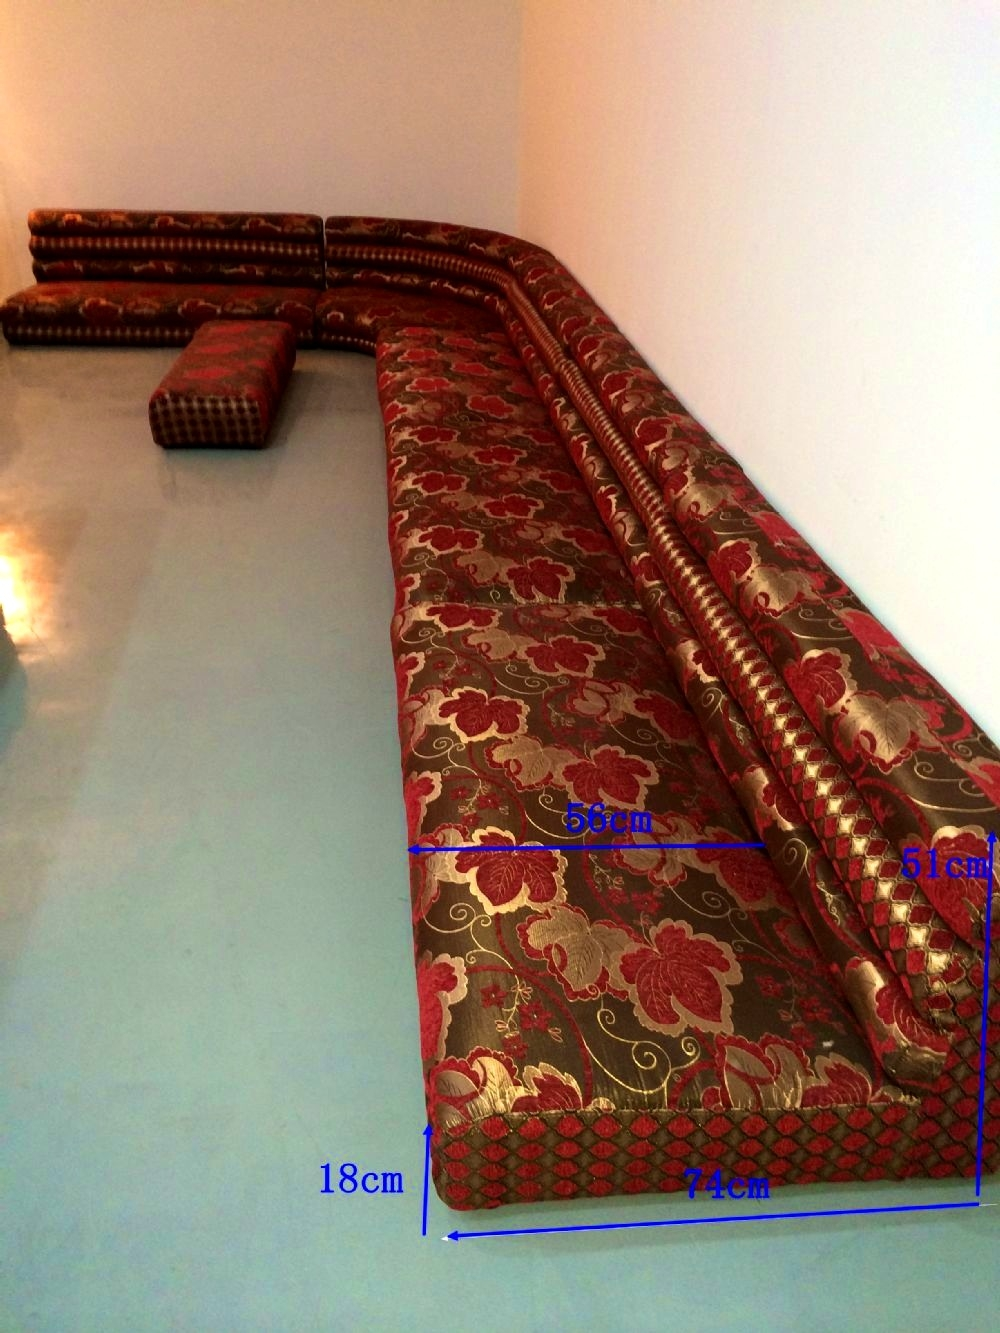 Bedroom Captivating Moroccan Floor Sofa Suppliers And Arabic In DIY Moroccan Floor Seating (Image 2 of 15)